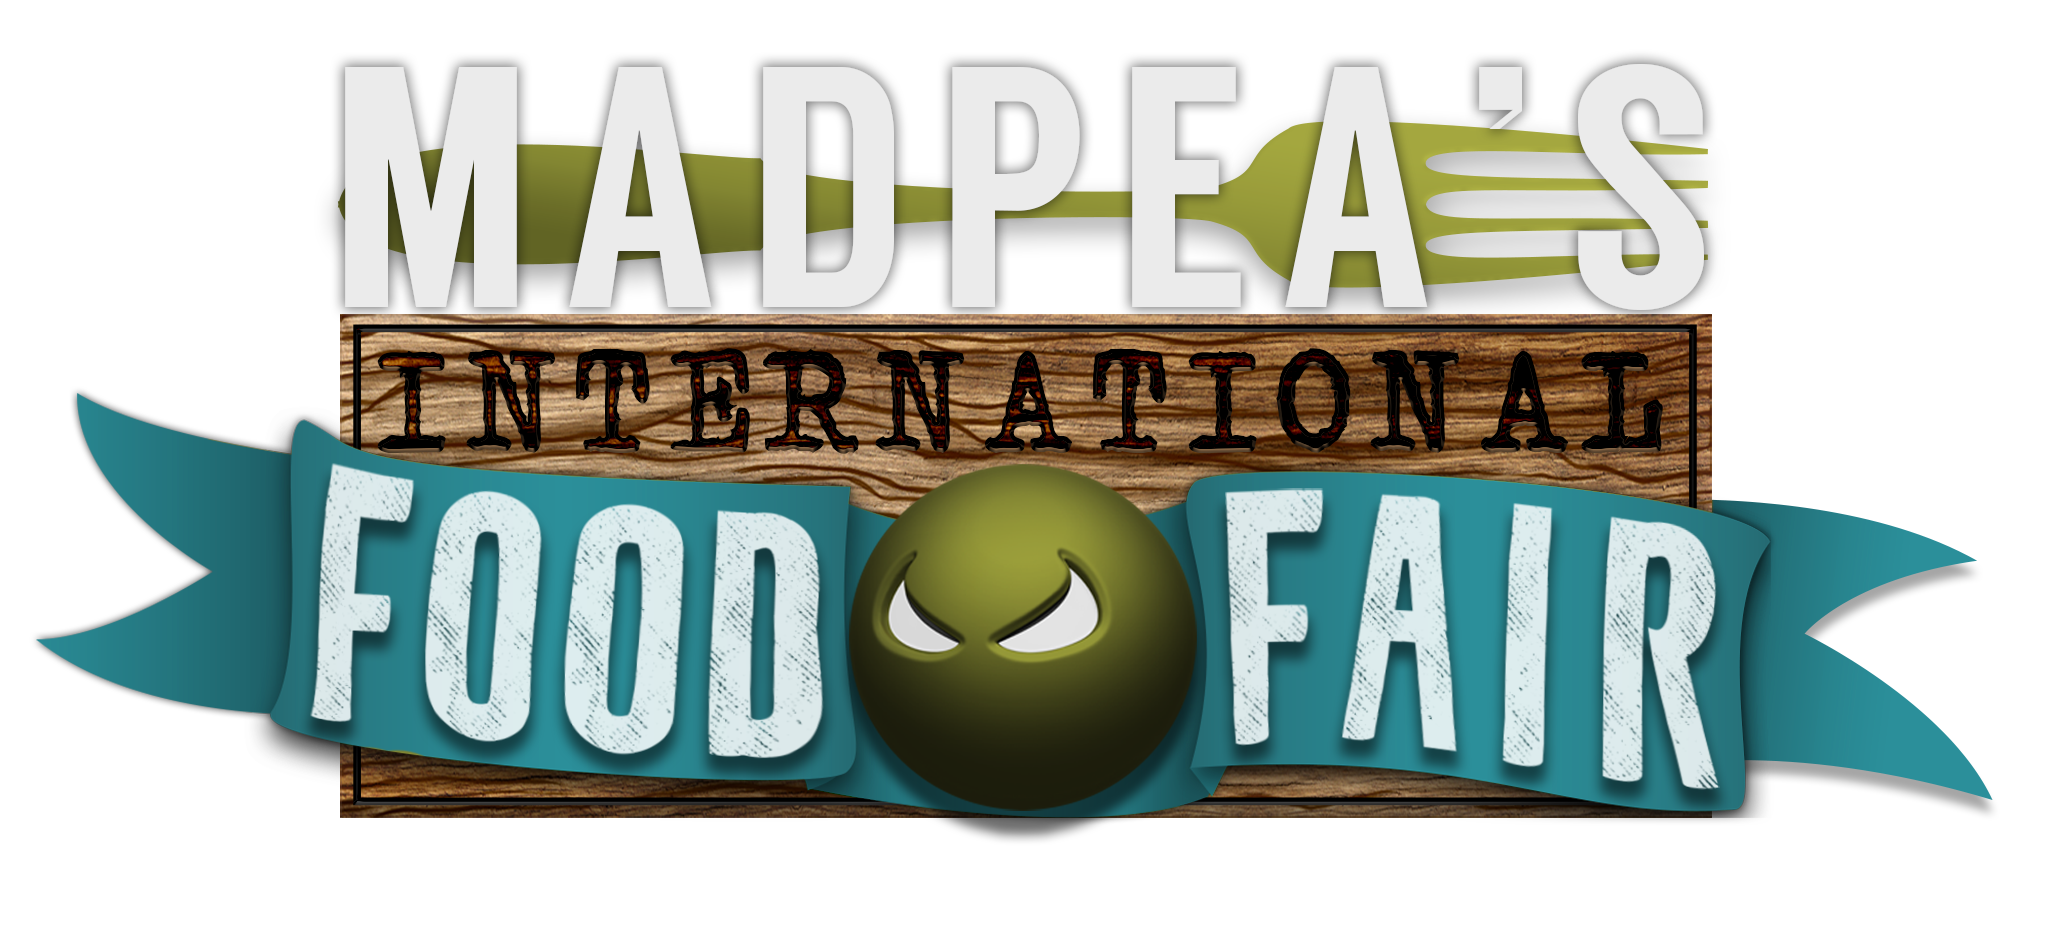 "From February the 18th till March the 4th MadPea is hosting a new one off event called the ""MadPea International Food Fair"" to raise funds for the Feed a Smile charity that helps impoverished children in the Rhonda Slums of Nakuru, Kenya. The event will have exclusive"